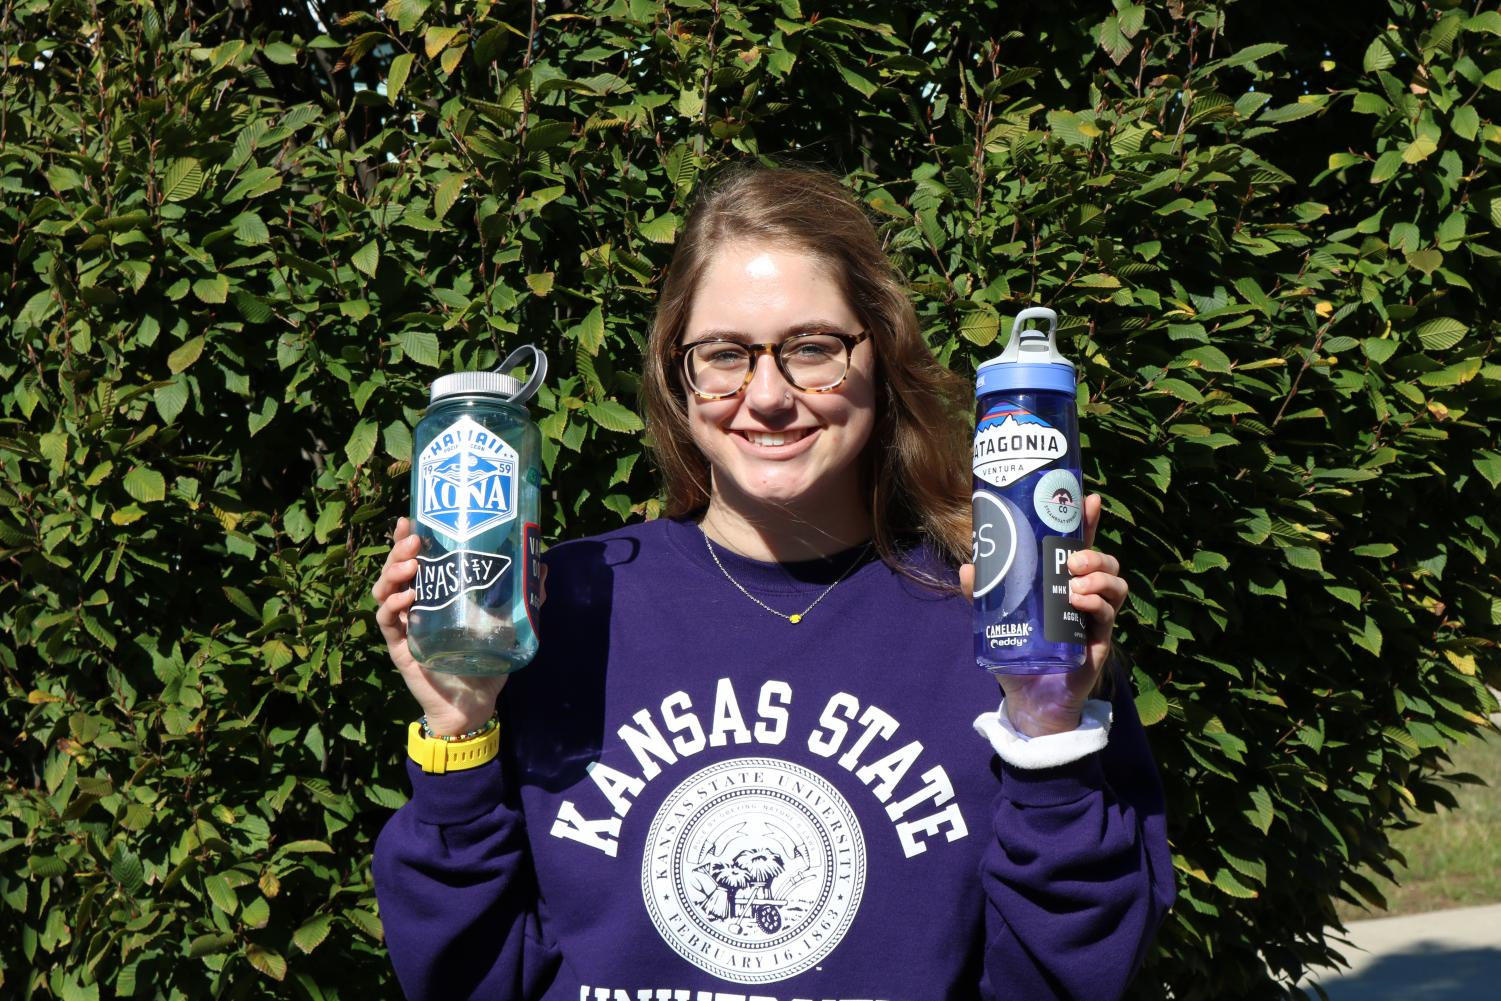 Savannah Greathouse flashes her two favorite water bottles. These stickers represent her favorite things, ranging from the outdoors to her favorite brands.